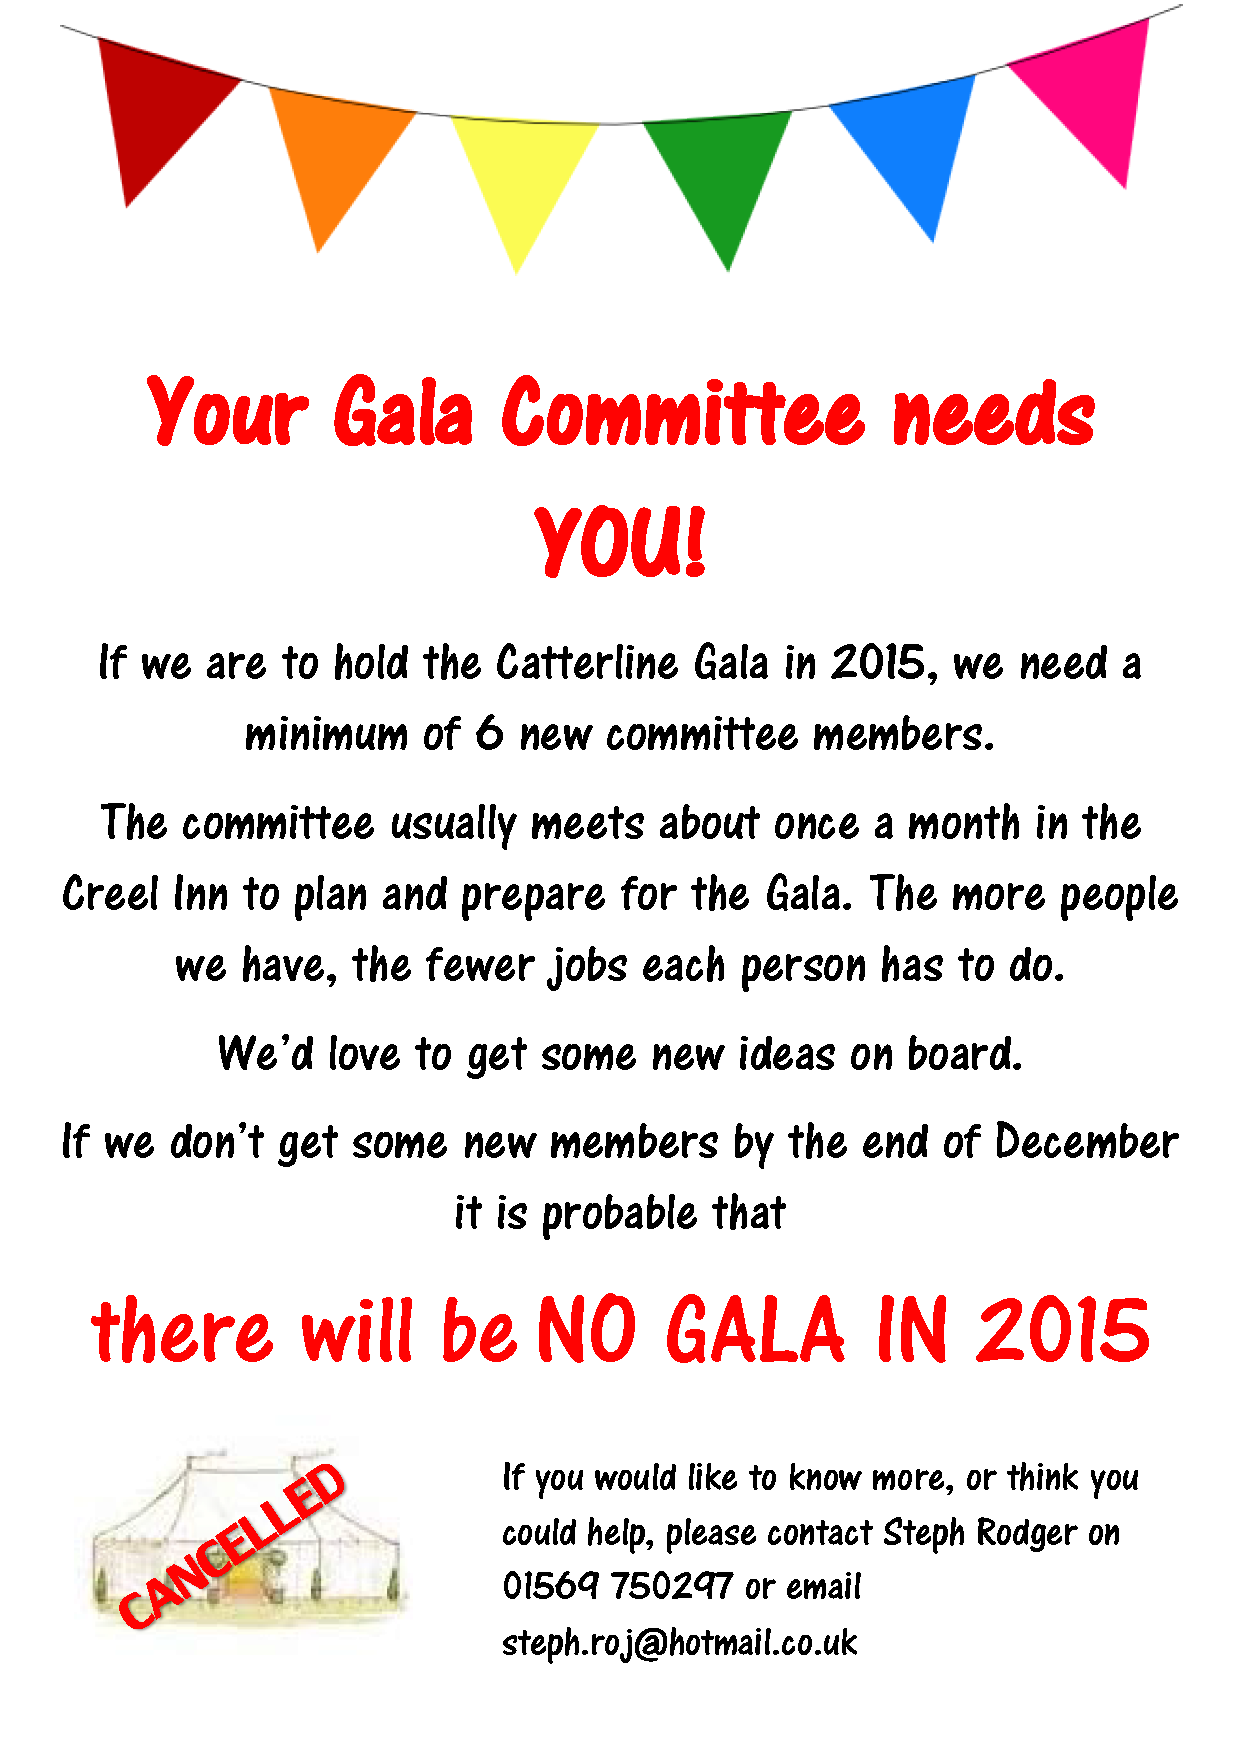 If we are to hold the Catterline Gala in 2015, we need a minimum of 6 new committee members. The committee usually meets about once a month in the Creel Inn to plan and prepare for the Gala. The more people we have, the fewer jobs each person has to do. We'd love to get some new ideas on board. If we don't get some new members by the end of December it is probable that there will be NO GALA IN 2015